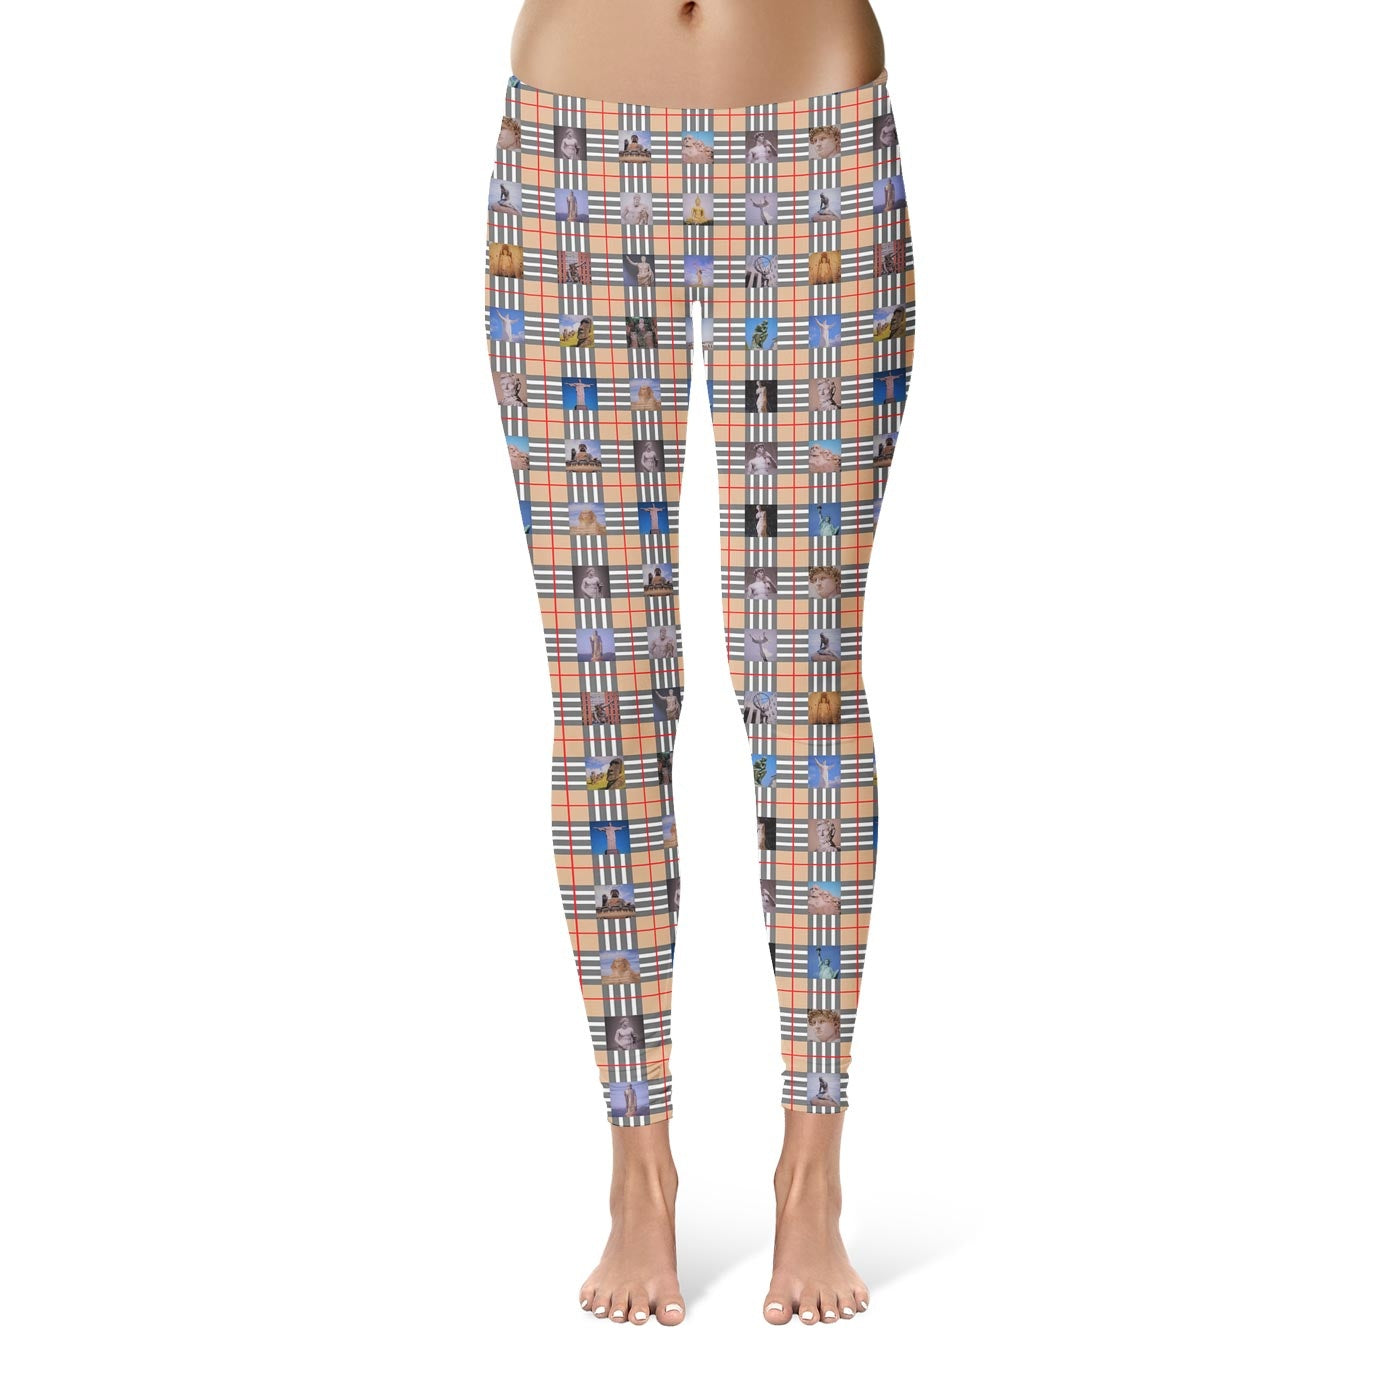 Cultural Snaps Leggings